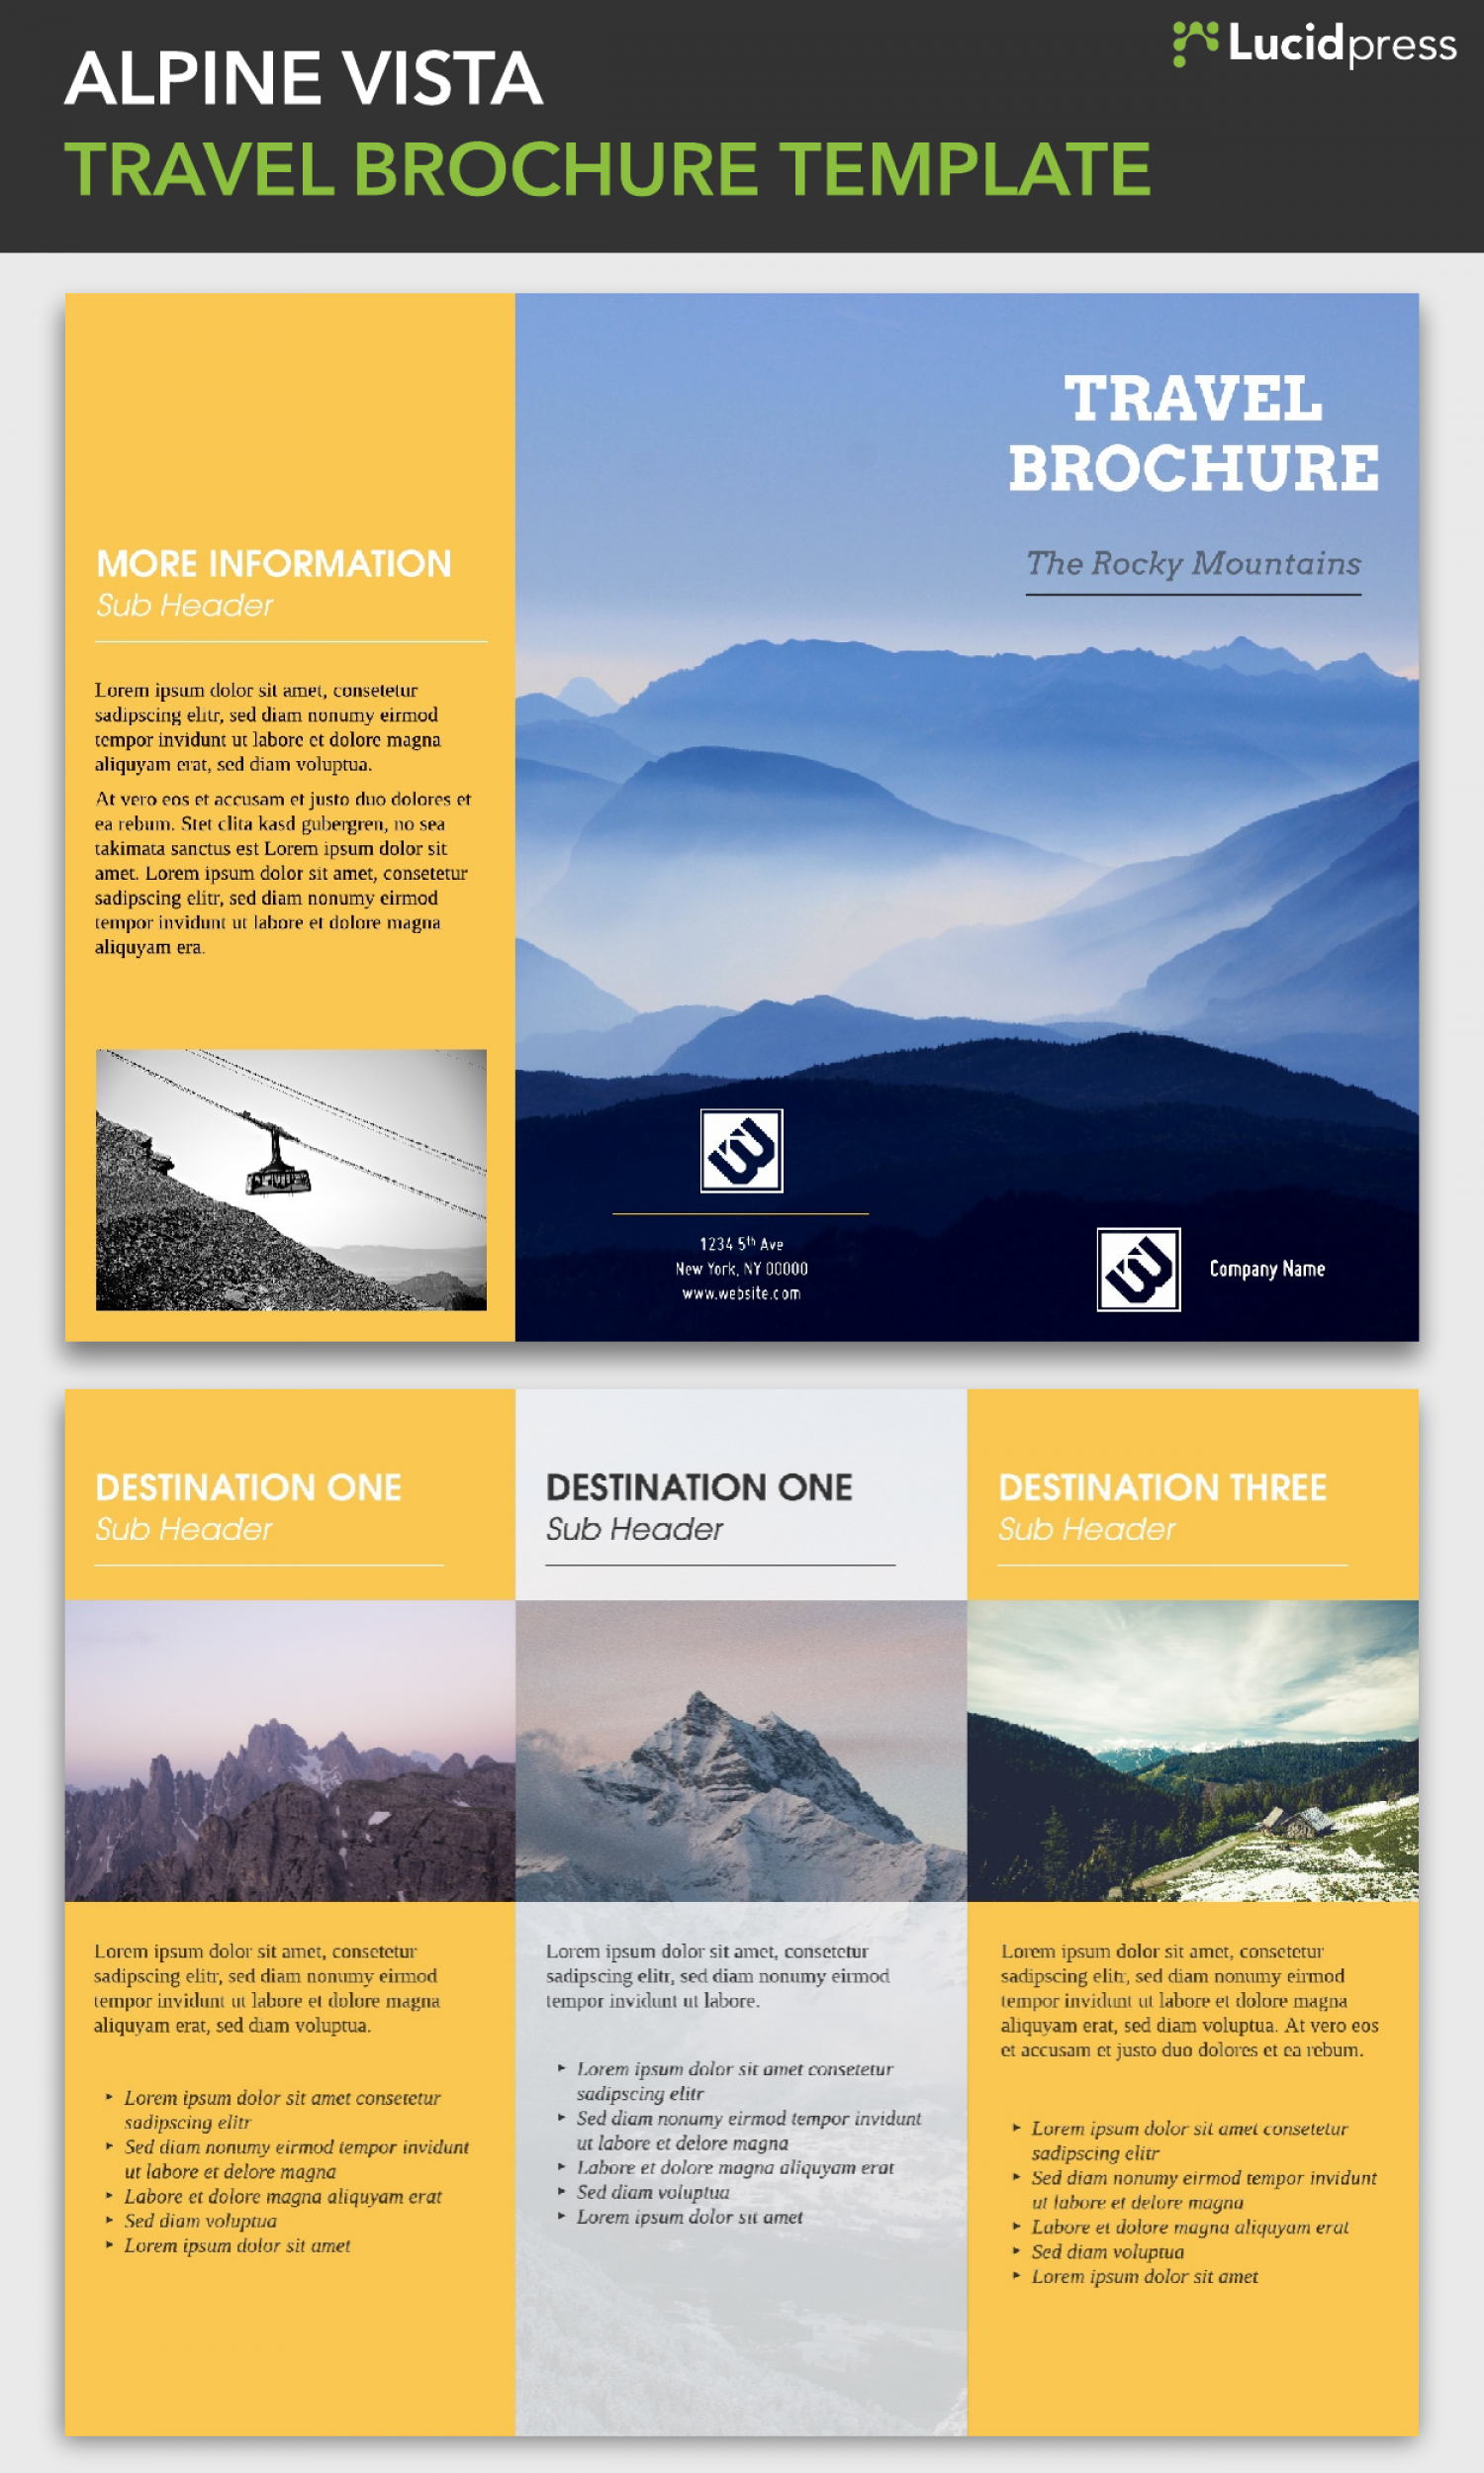 Travel Brochure Template | Made in Lucidpress | Visual.ly